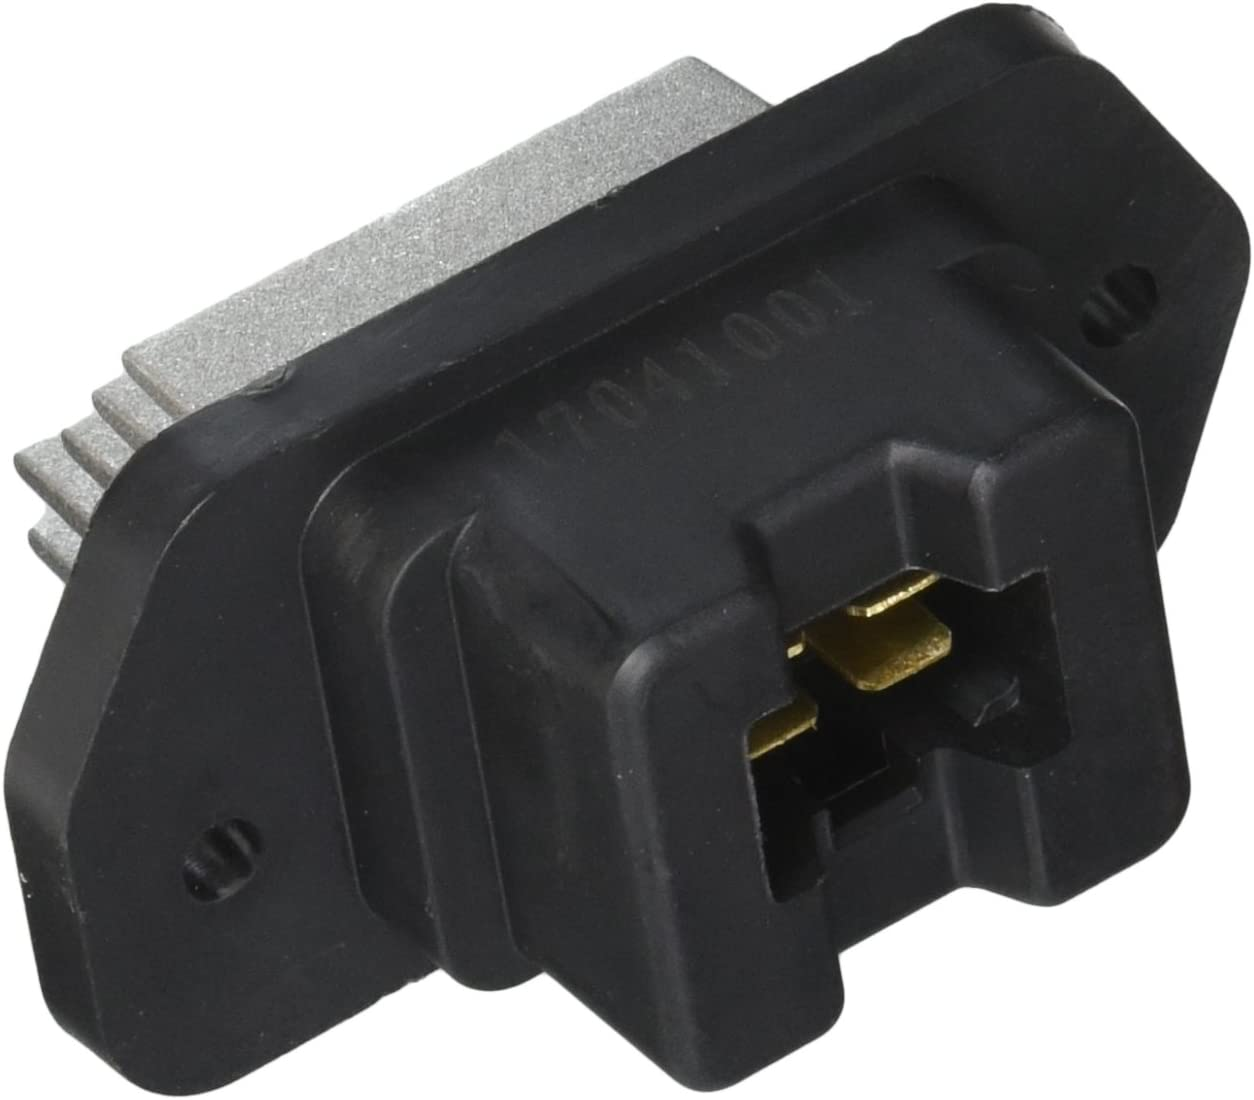 Standard Don't miss the campaign Motor Products Blower Resistor RU-387 Reservation